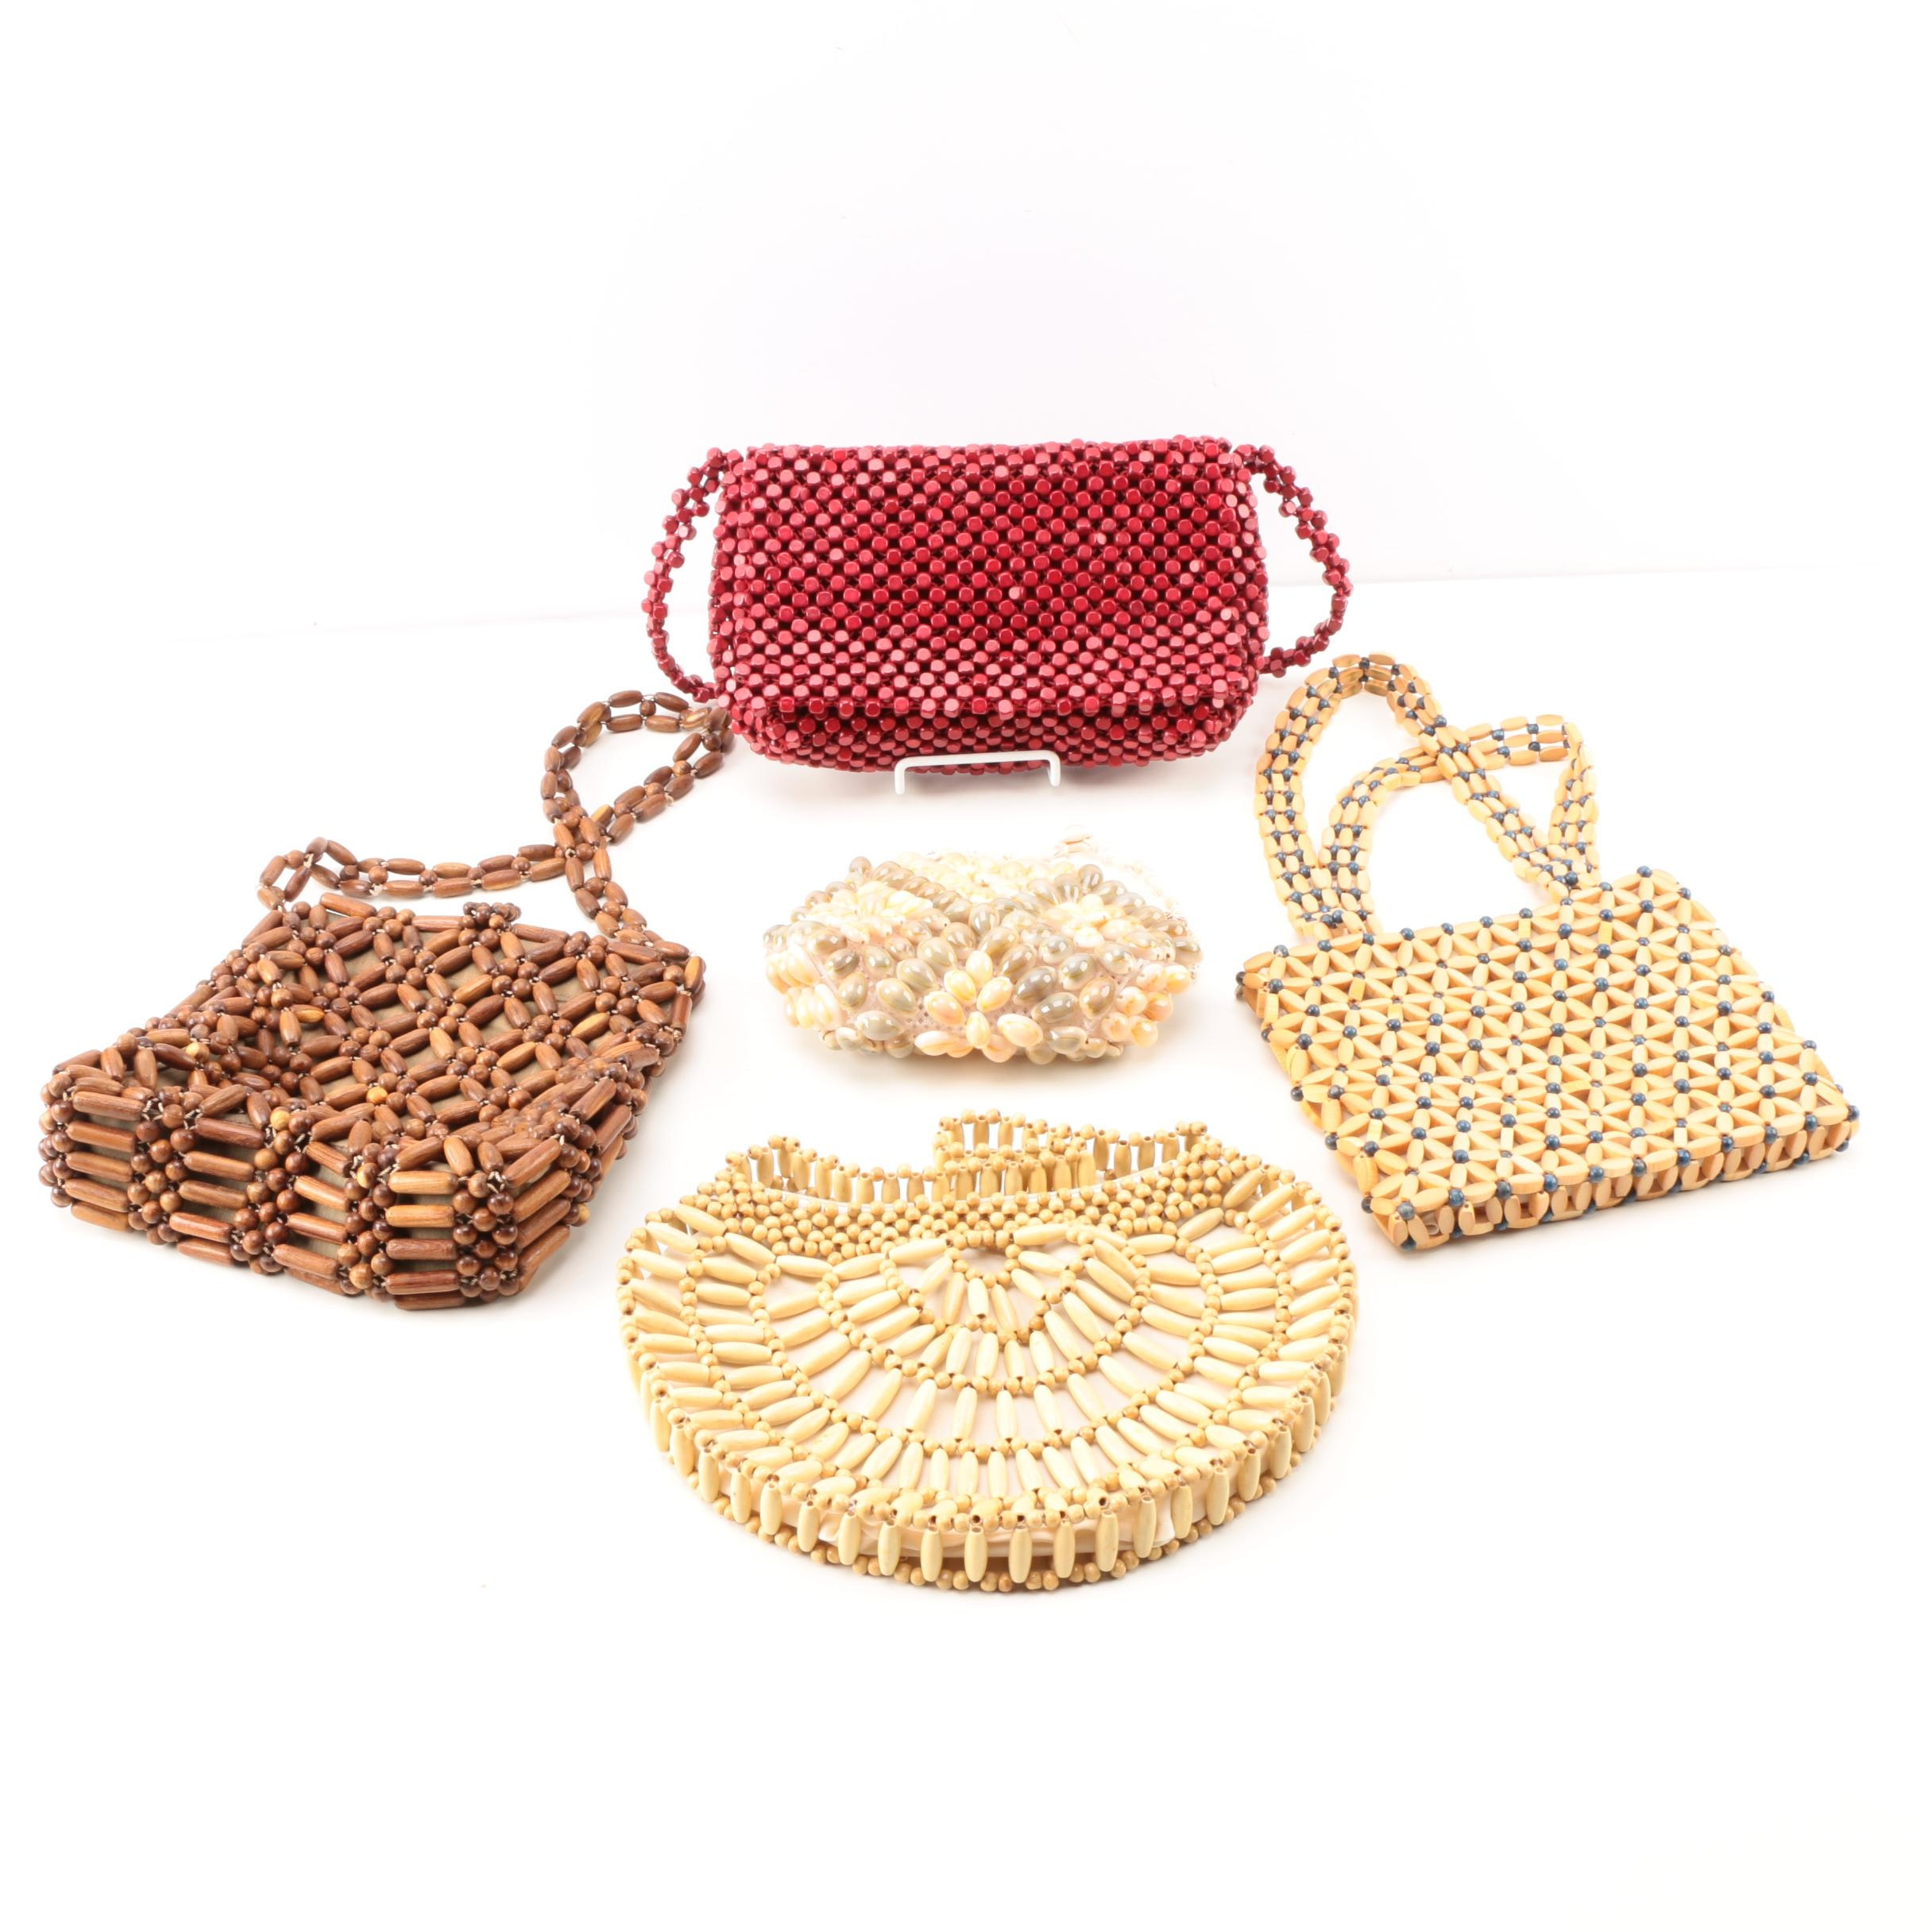 Vintage Wooden and Shell Beaded Handbags